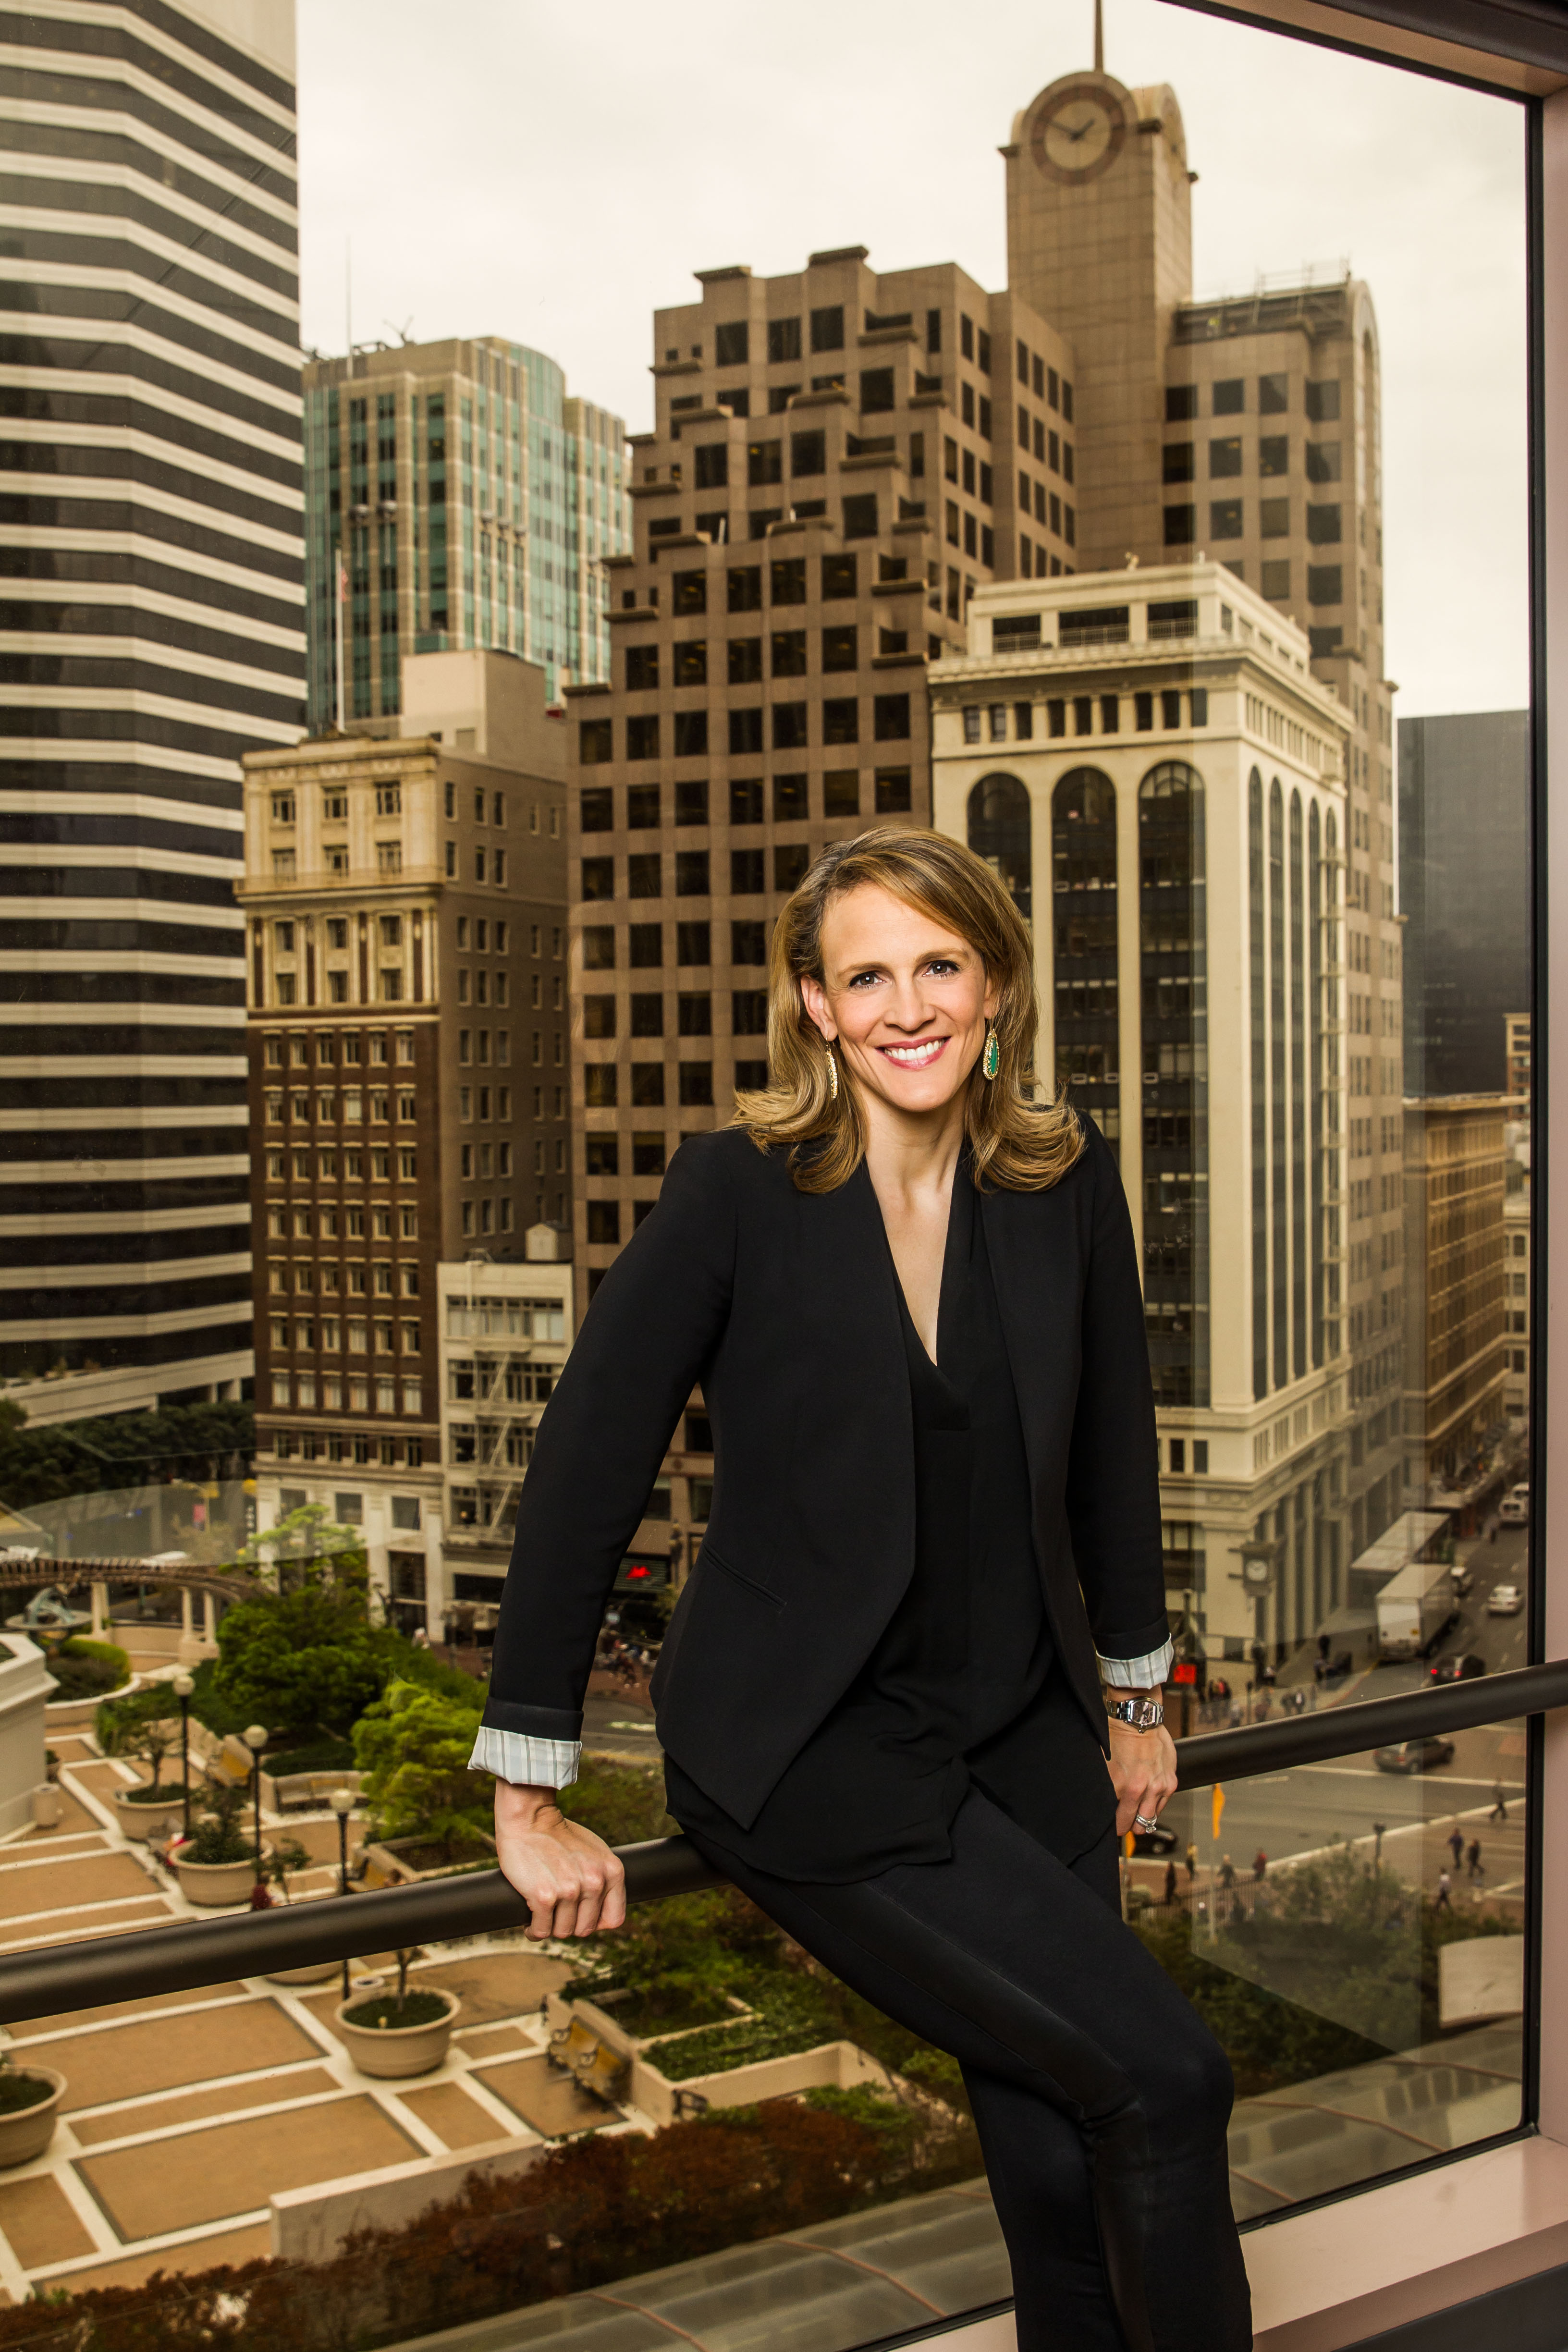 OpenTable's CEO Christa Quarles